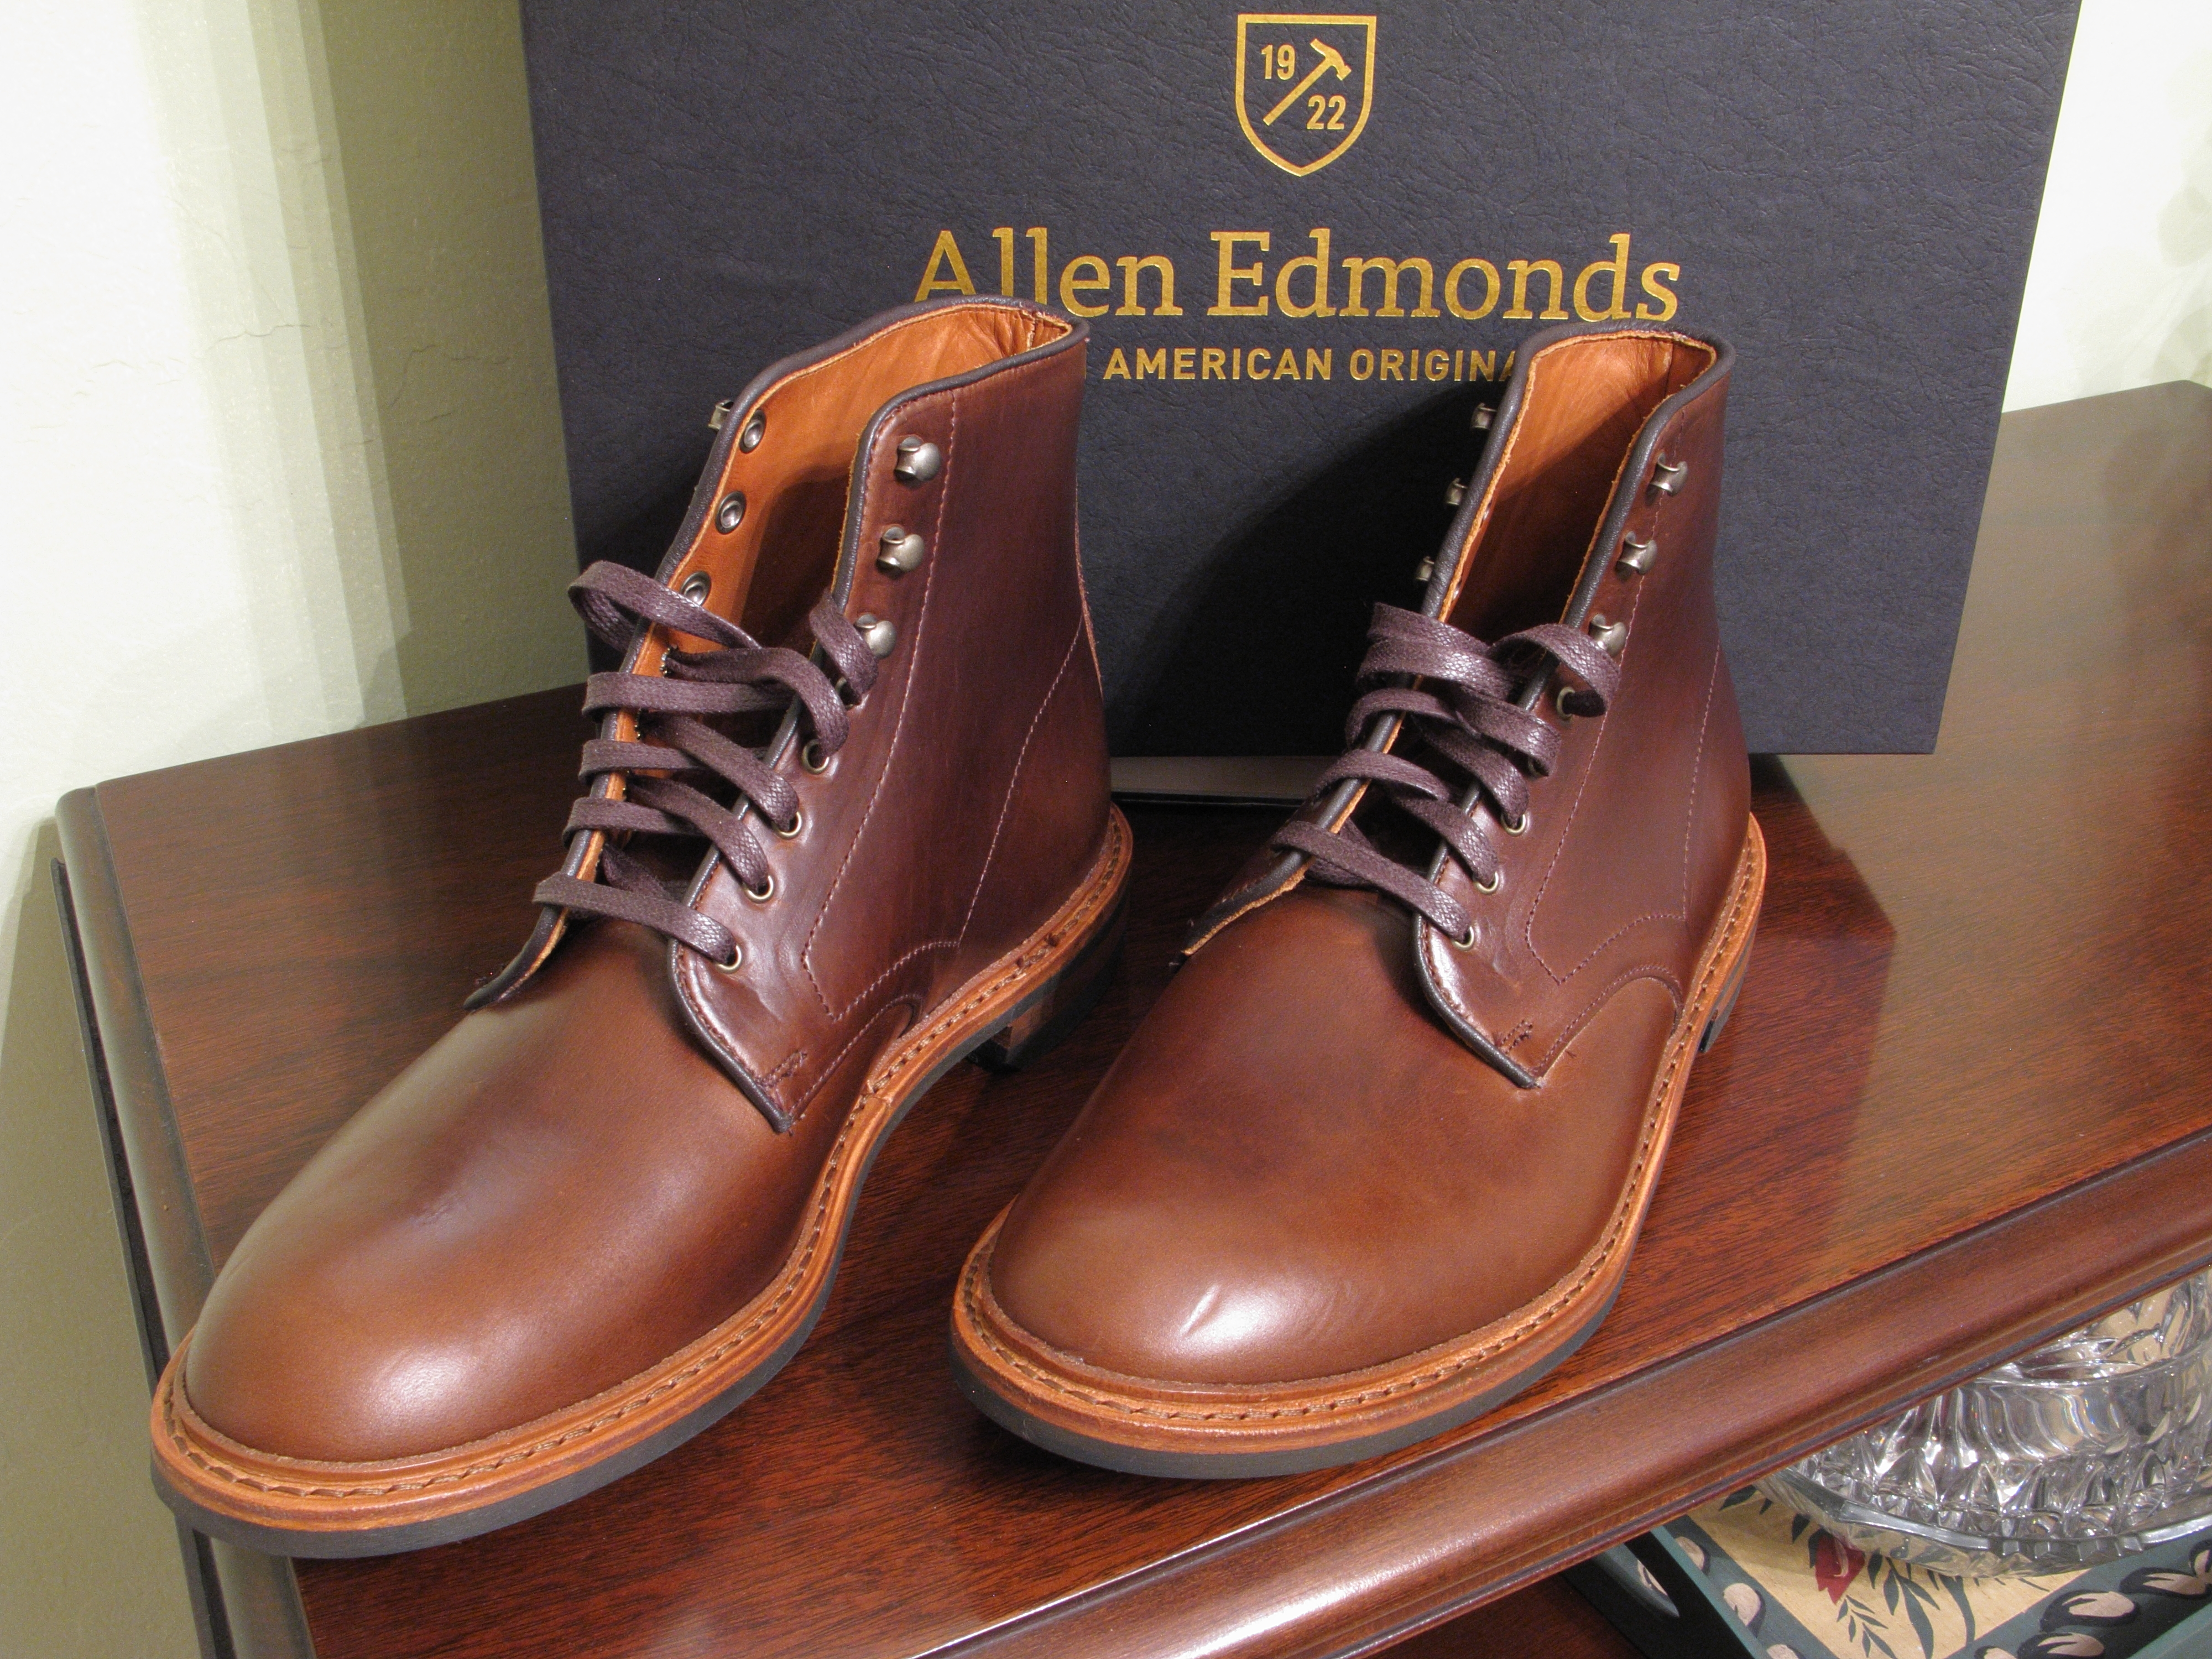 f6303895a94 Allen Edmonds Appreciation Thread 2016 - News, Pictures, Sizing ...